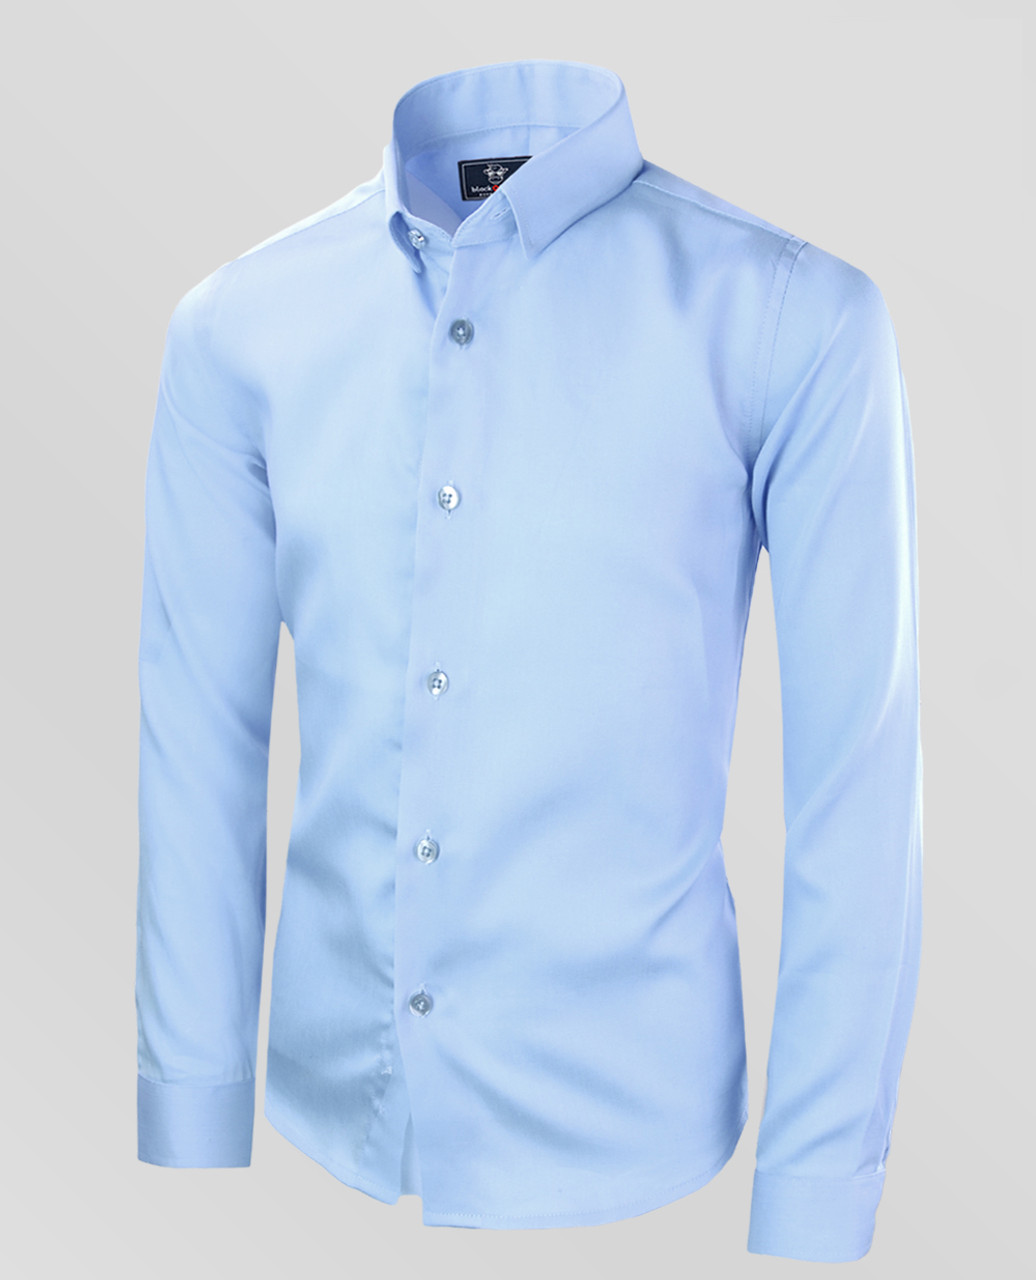 Black N Bianco Boys Signature Button Down Sateen Light Blue Dress Shirt